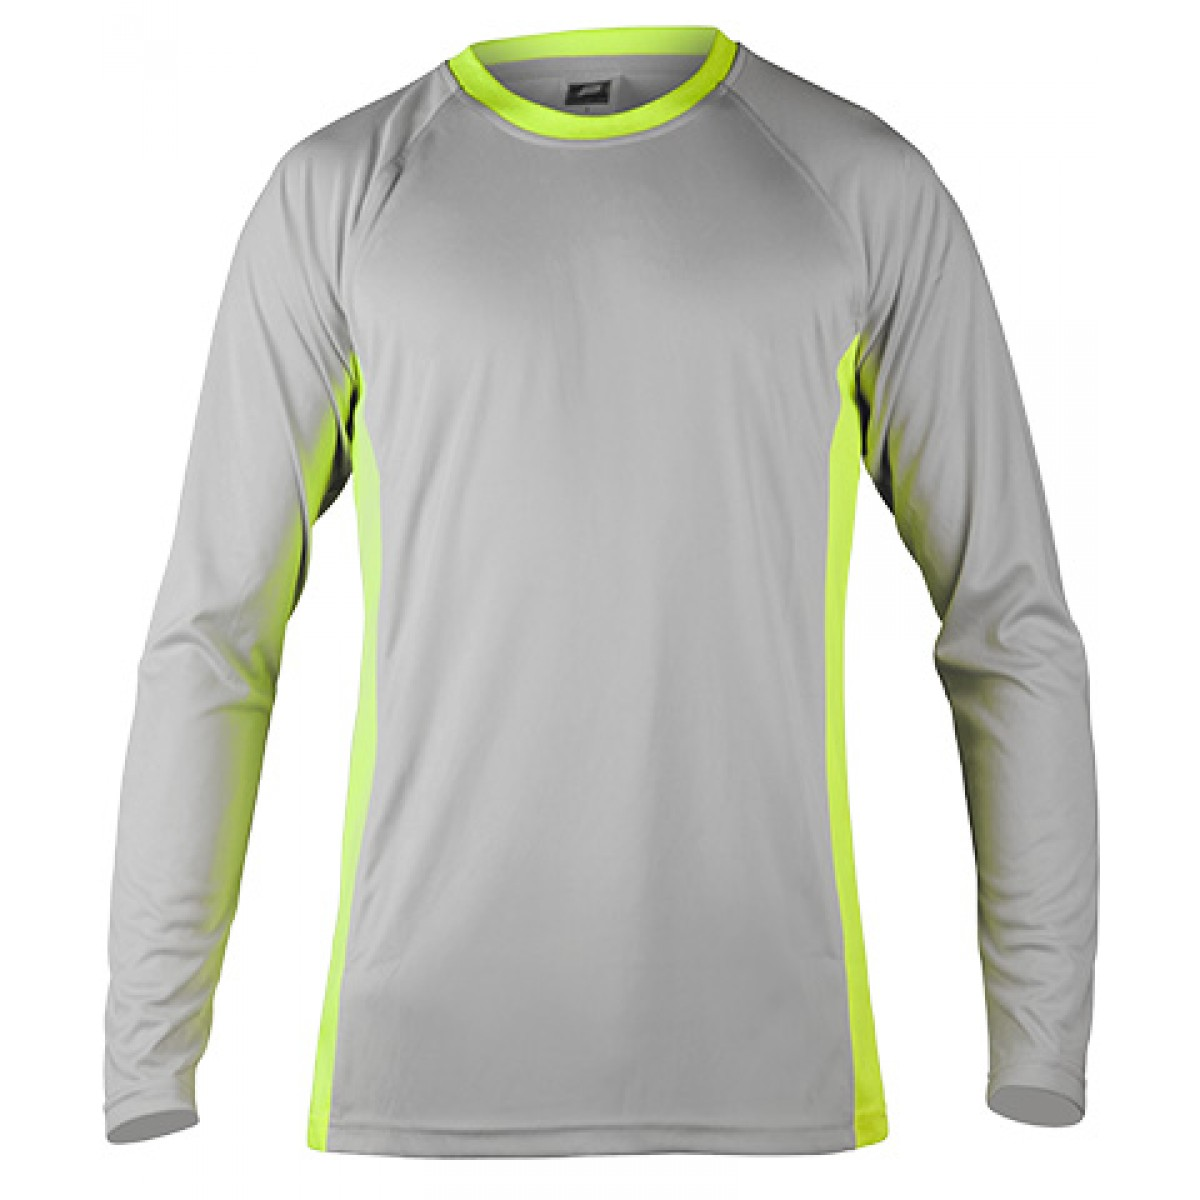 Long Sleeves Performance With Side Insert-Gray/Green-L